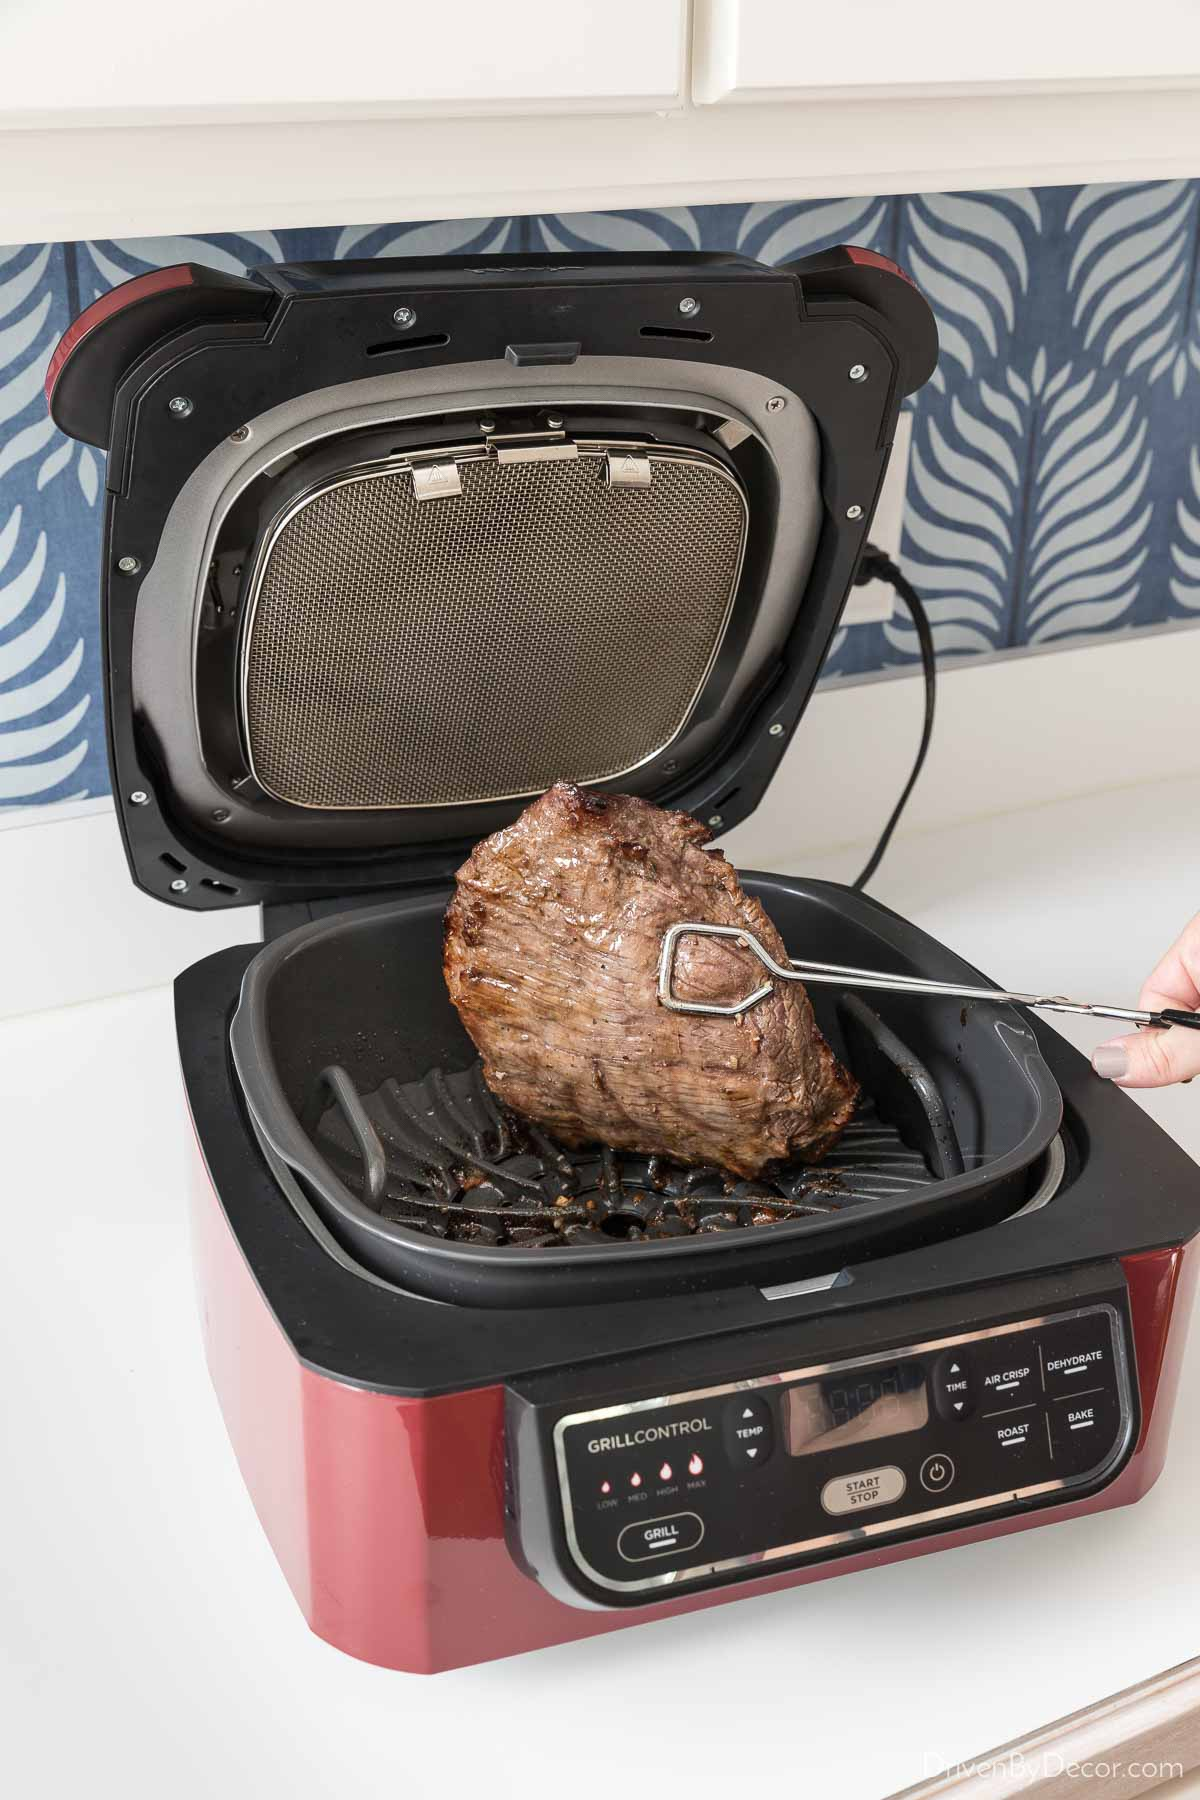 This Ninja Foodi indoor grill is one of the best small kitchen appliances - love it!